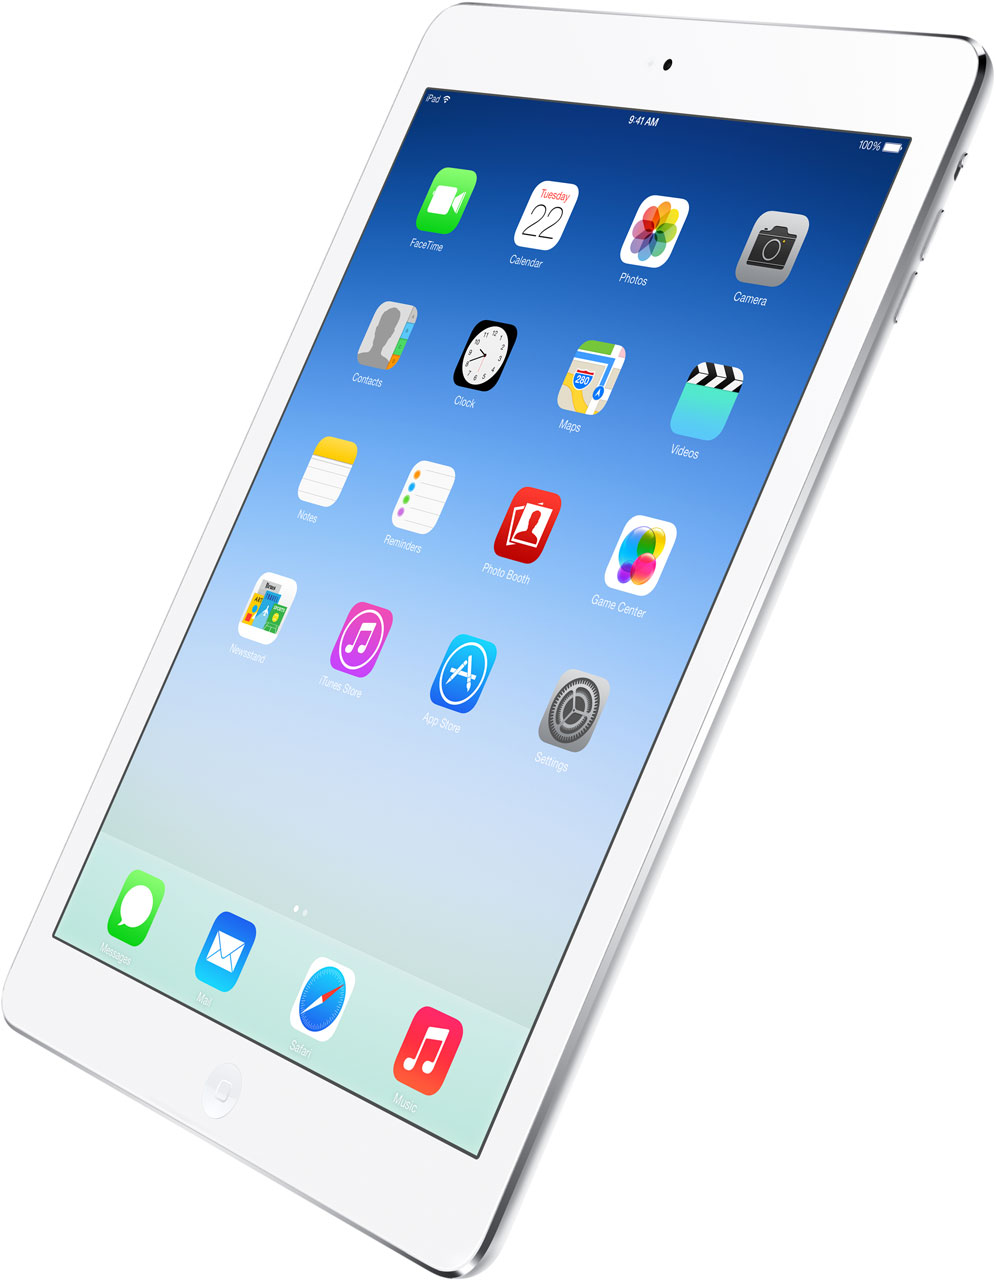 Design Review Of Apple iPad Air 2 The Most Perfect iPad